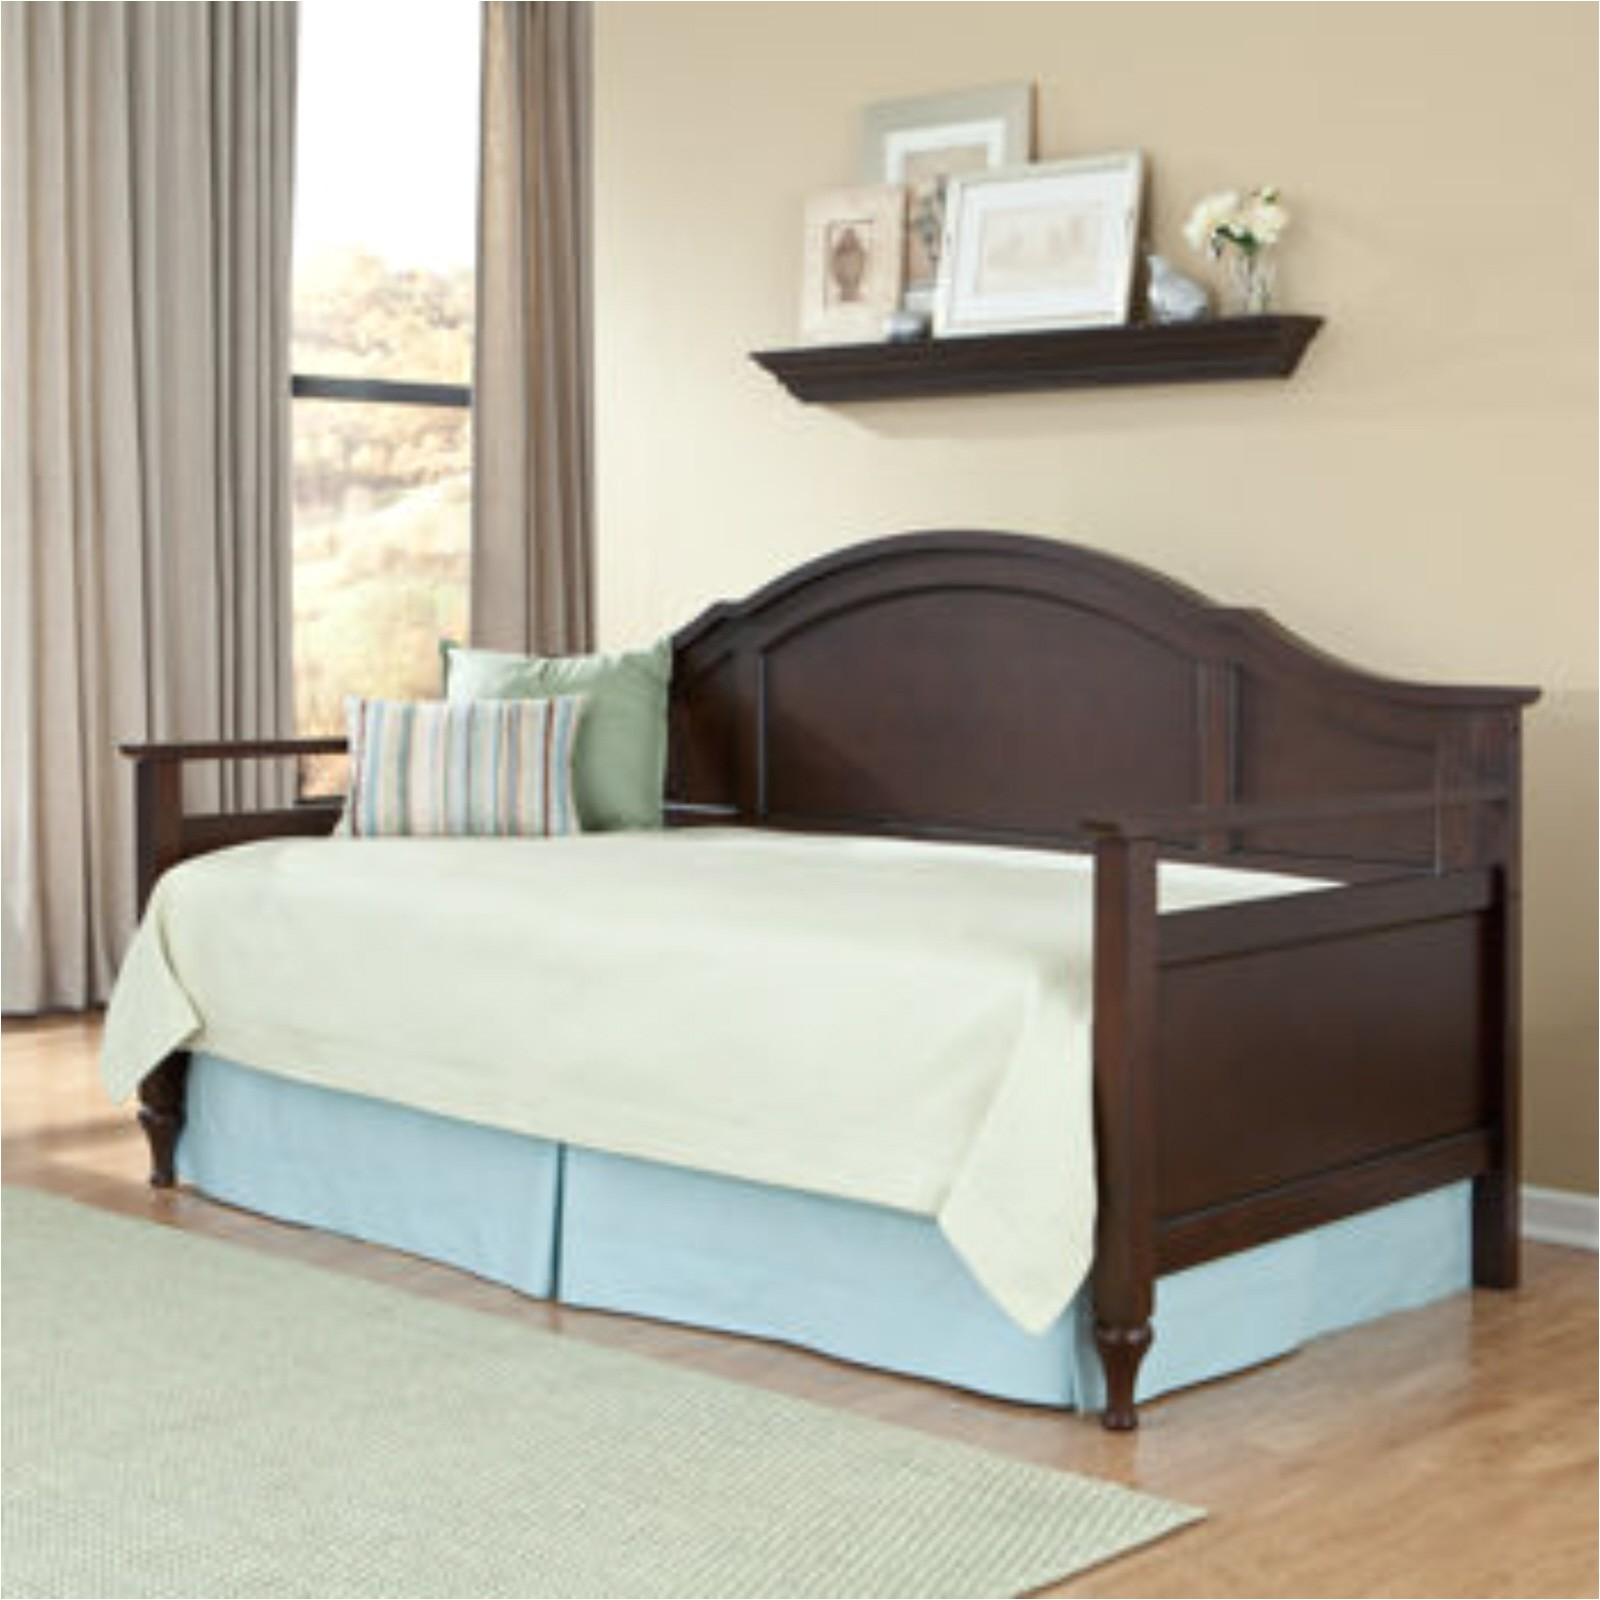 Pop Up Trundle Bed ashley Furniture Day Beds for Children Kids Bed Rooms White Casey fort